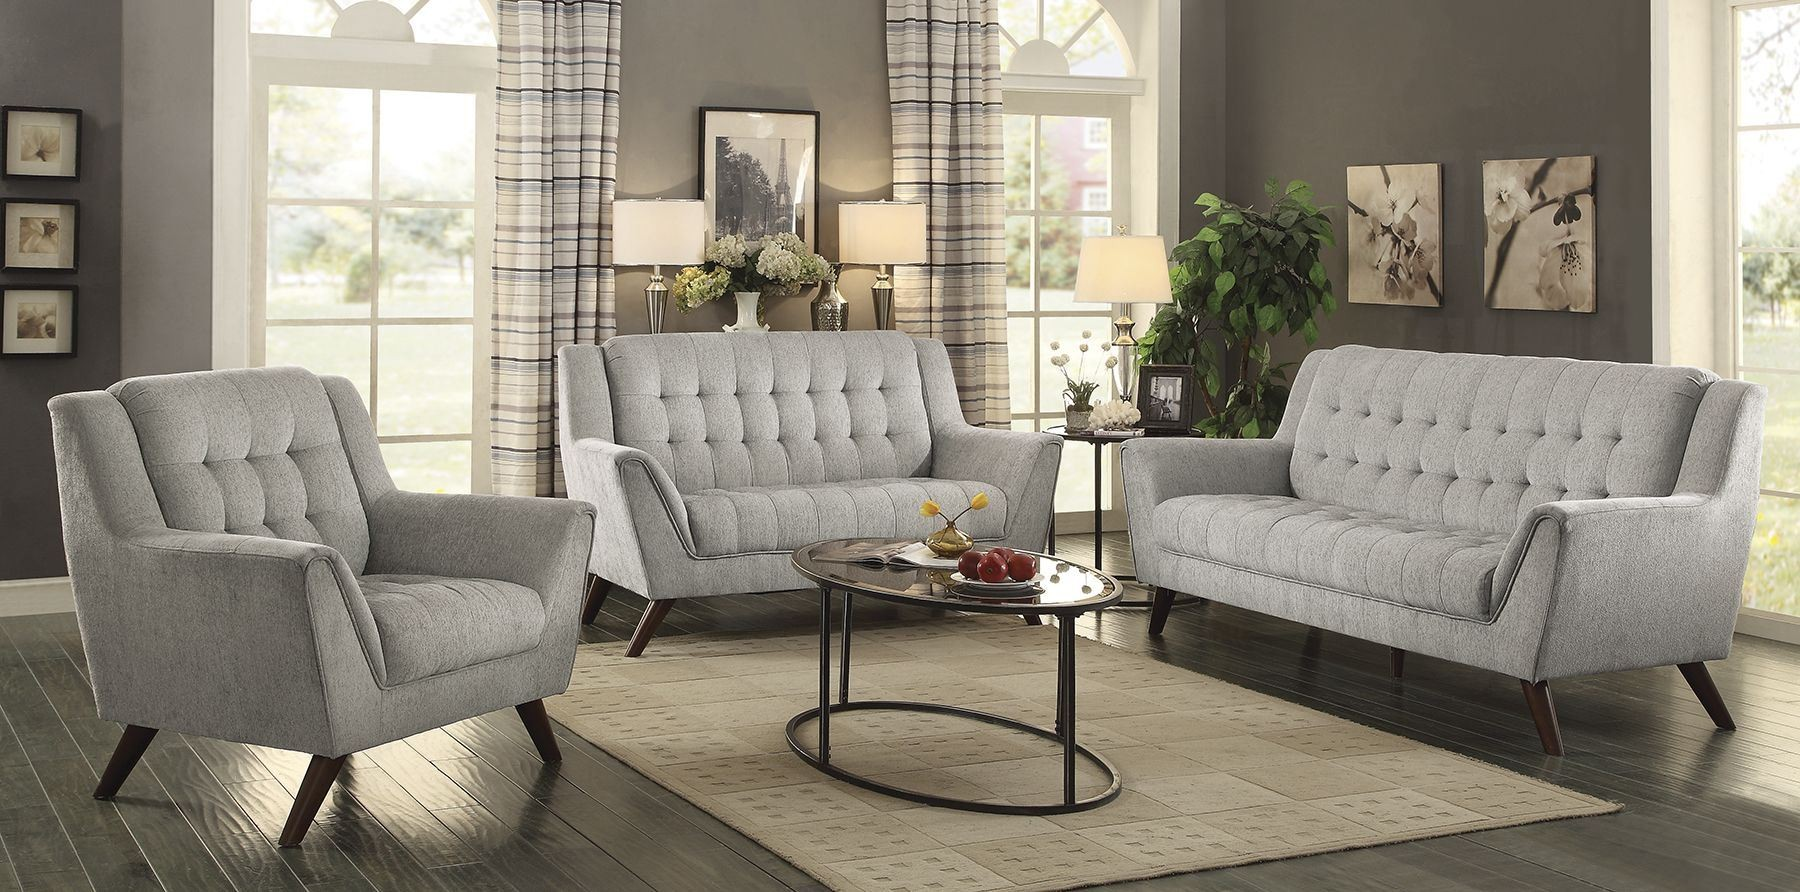 Marlo Furniture Living Room